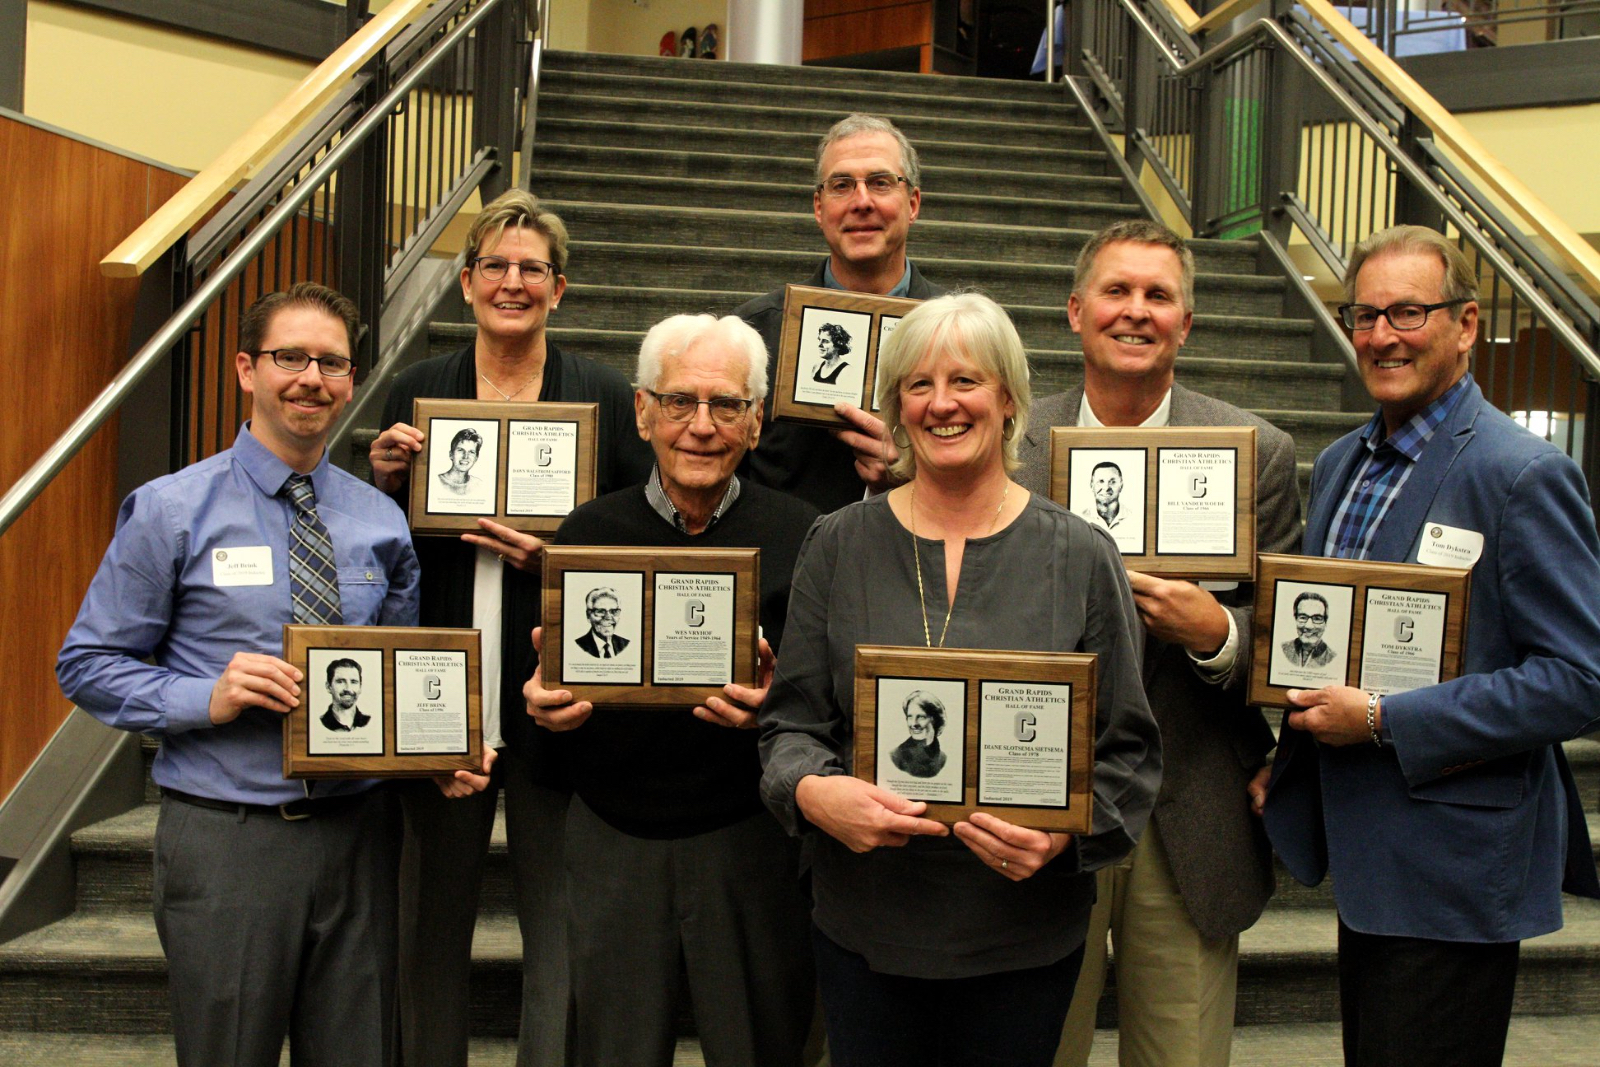 Eagles Athletic Hall of Fame Class of 2019